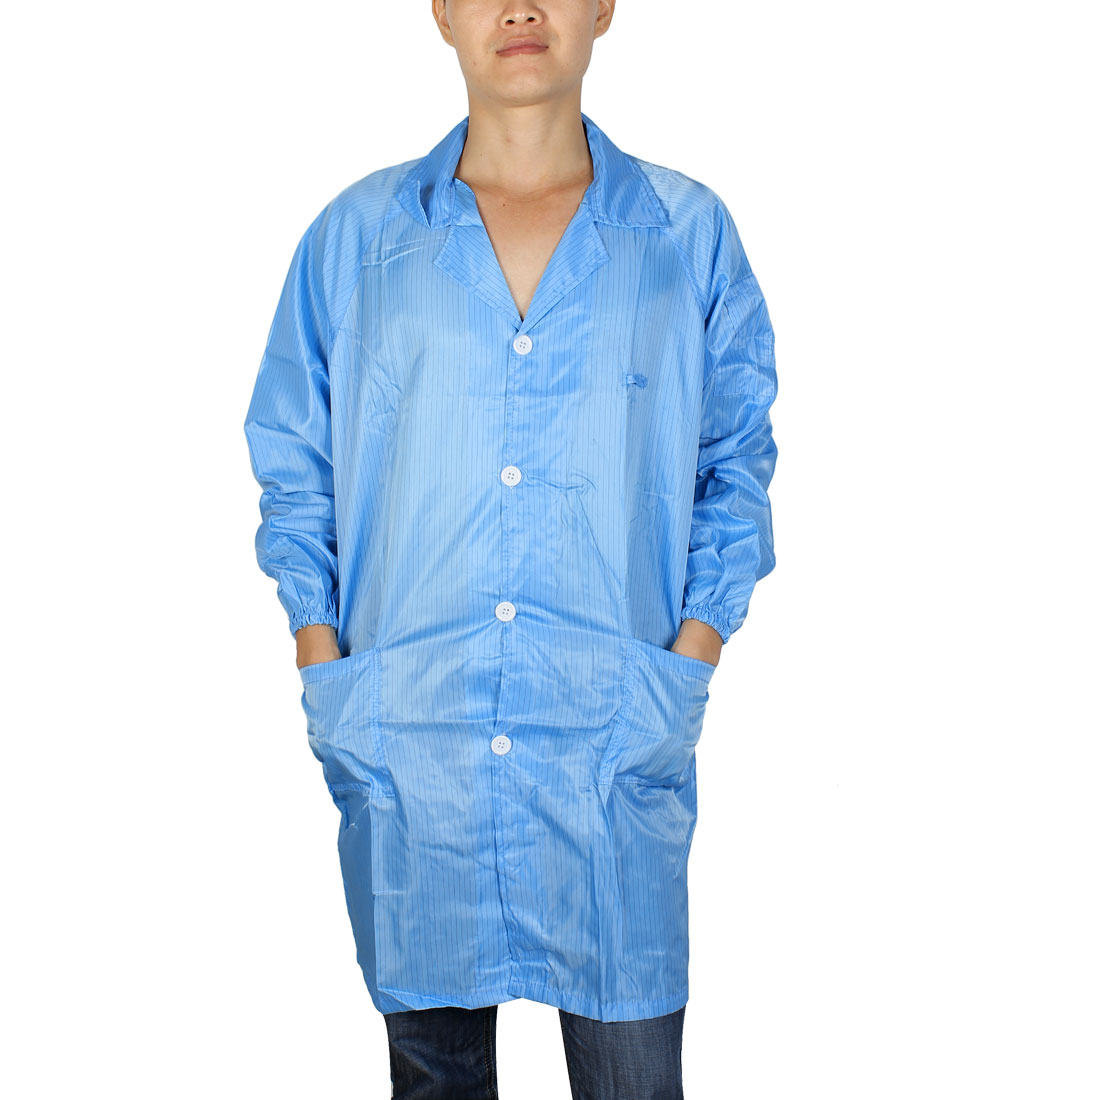 Unisex Long Sleeve Lapel Collar Button Down Stripes Pattern Clean Room Anti Static Overalls Coat Blue XXXL/XX Large(US 50)